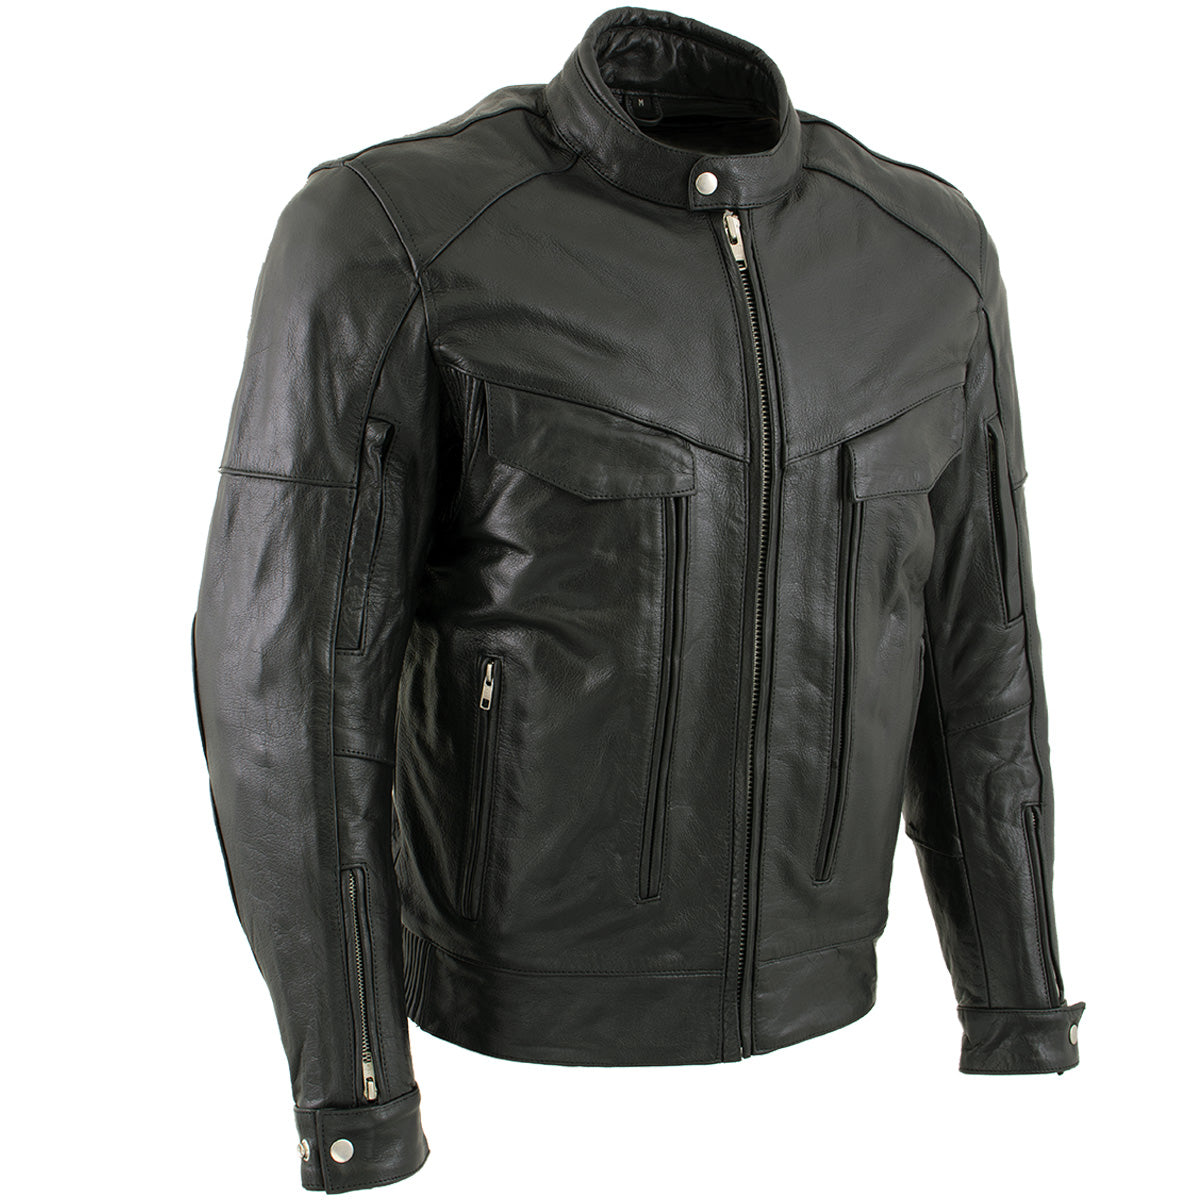 Xelement B4495 'Bandit' Men's Black Buffalo Leather Cruiser Motorcycle